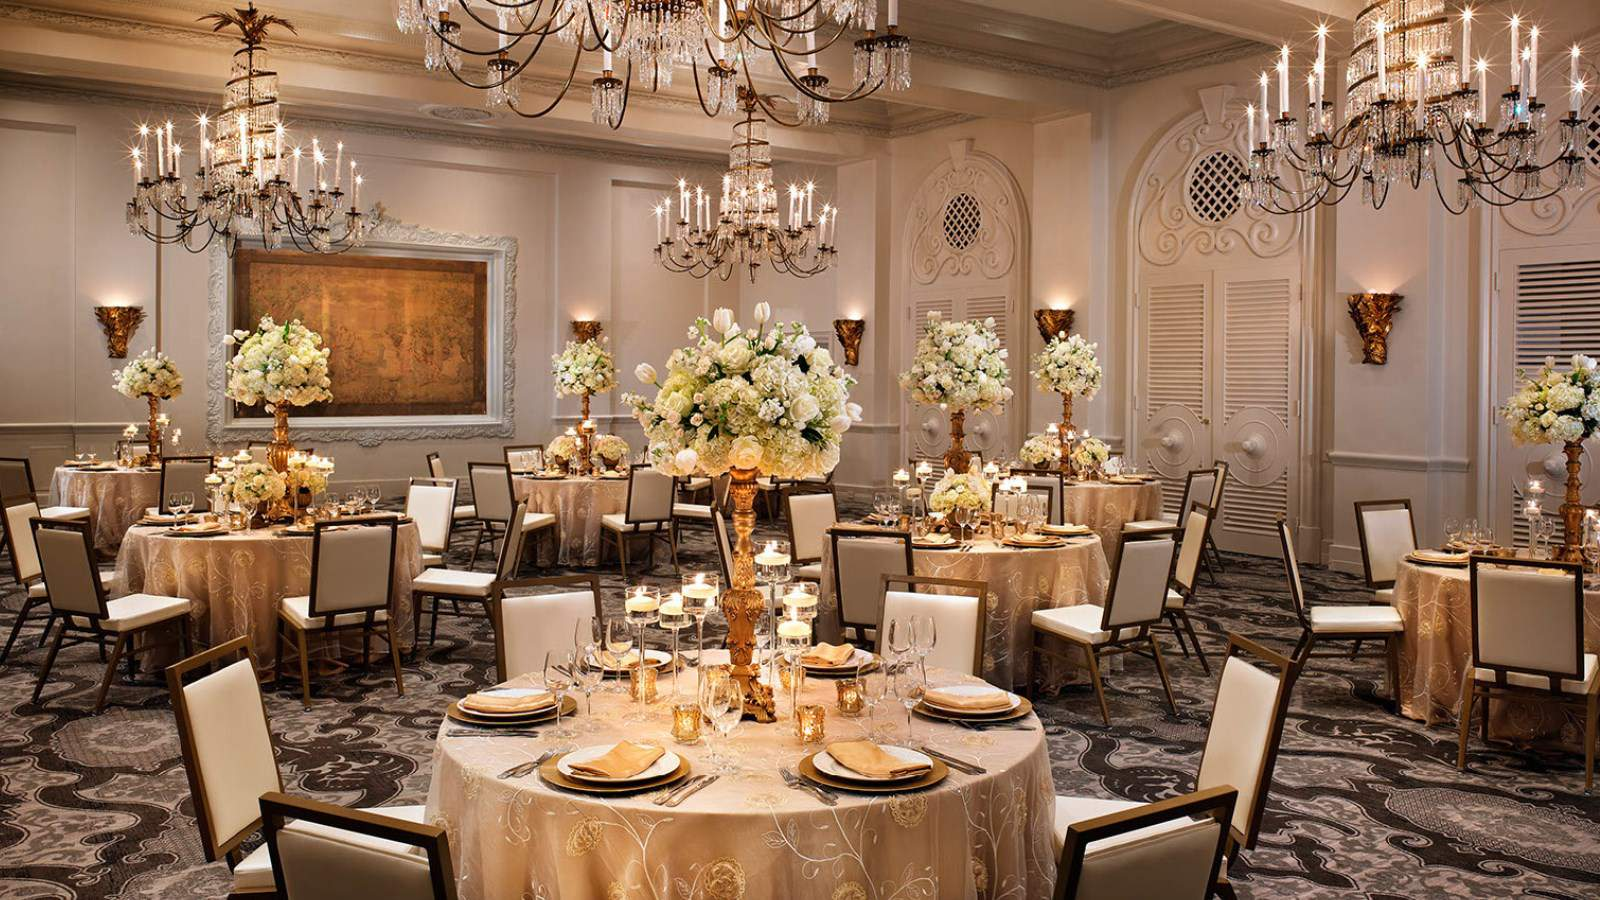 Historic glamorous san antonio wedding venue st peraux ballroom junglespirit Choice Image